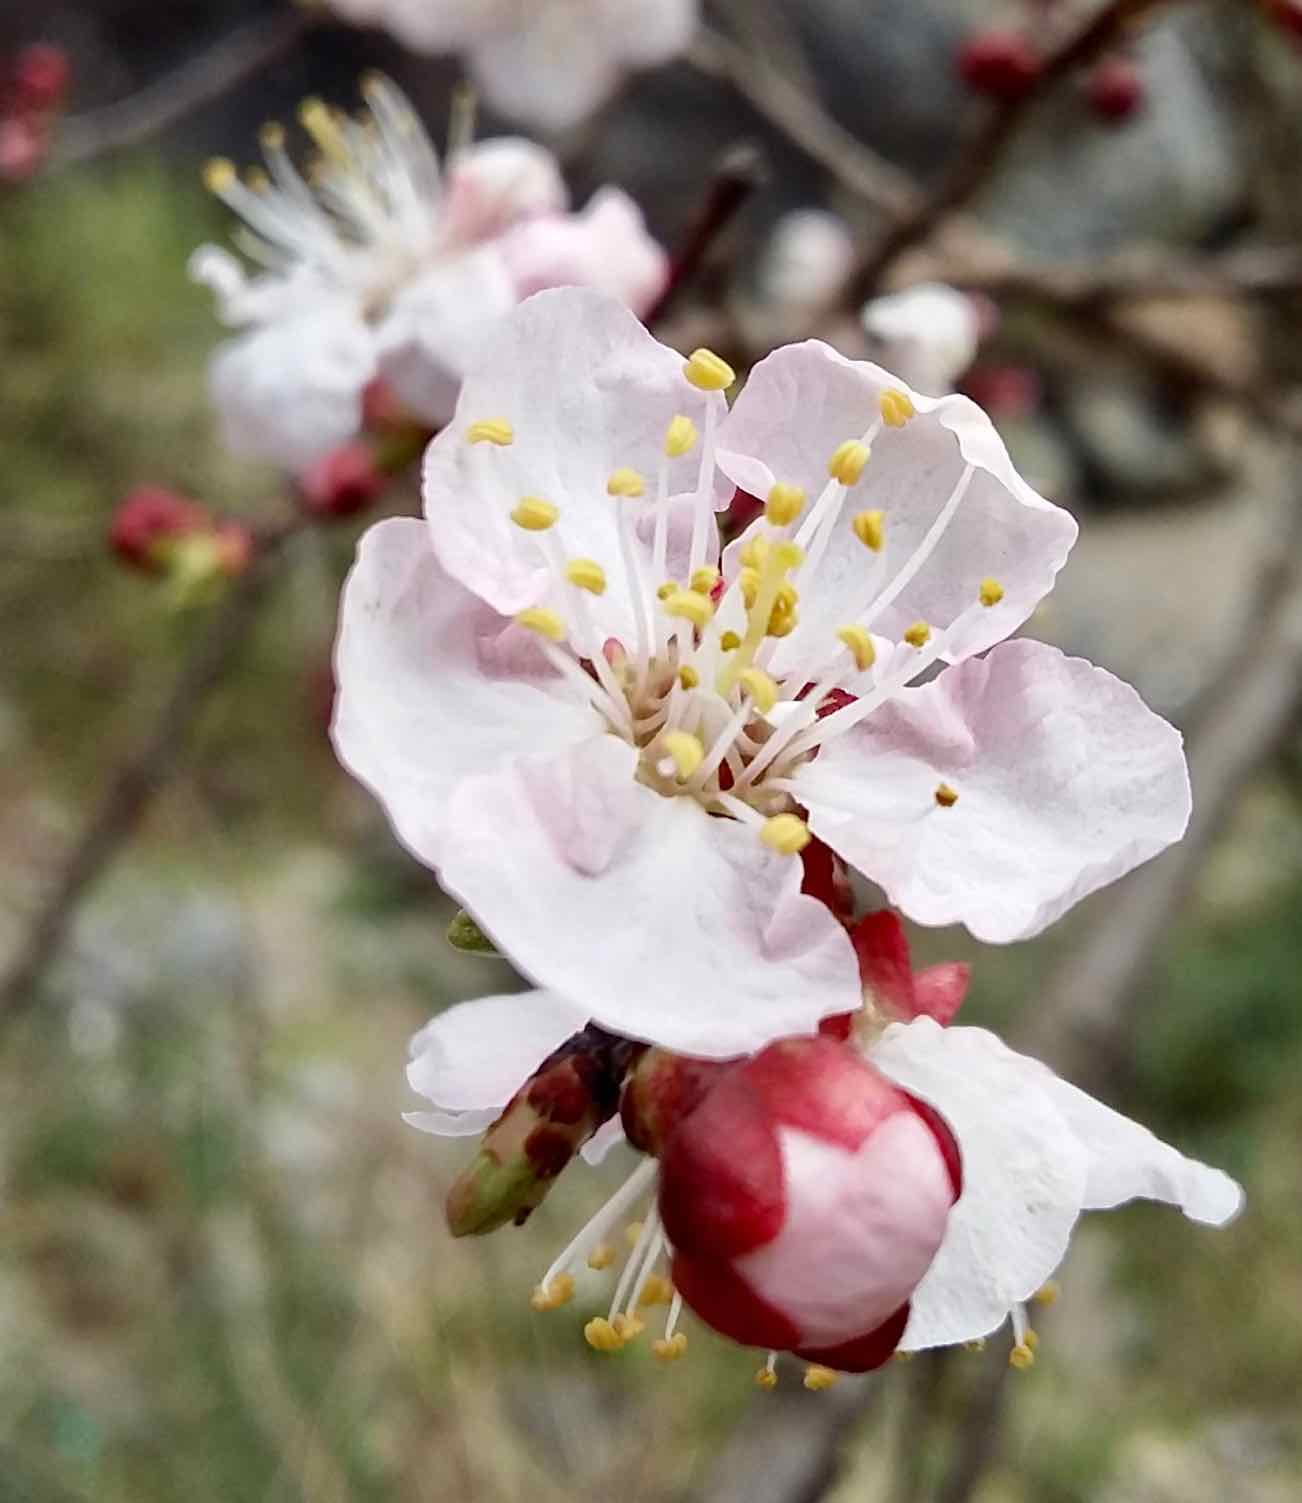 Apricot flower in bloom in mid-March. Definitely worth stopping for